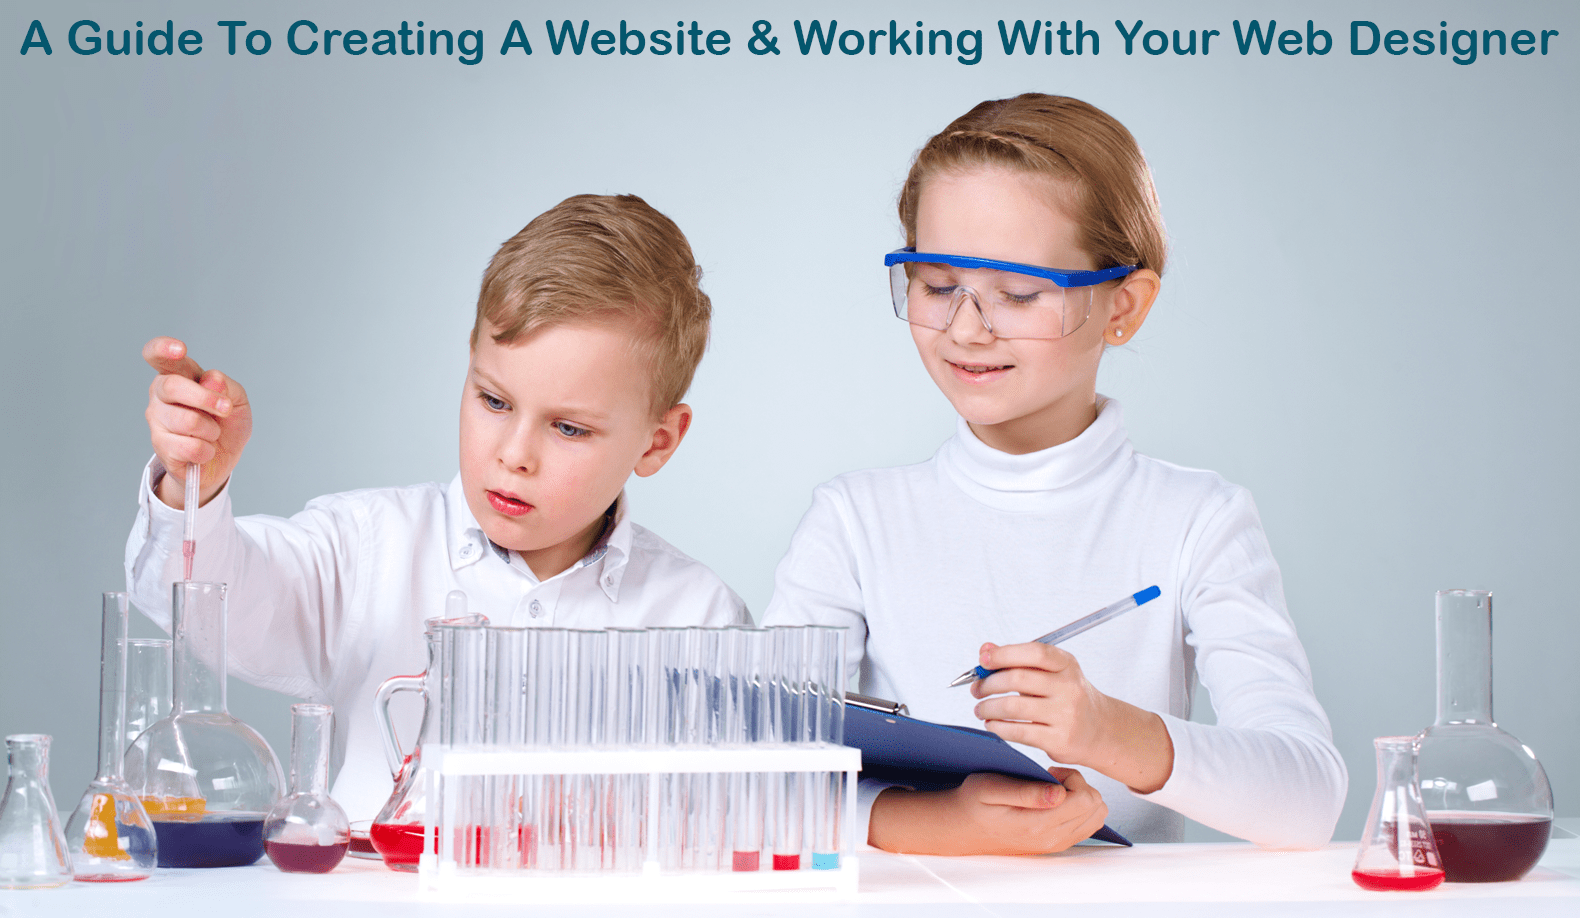 Creating A Website & Working With Your Web Designer pt1